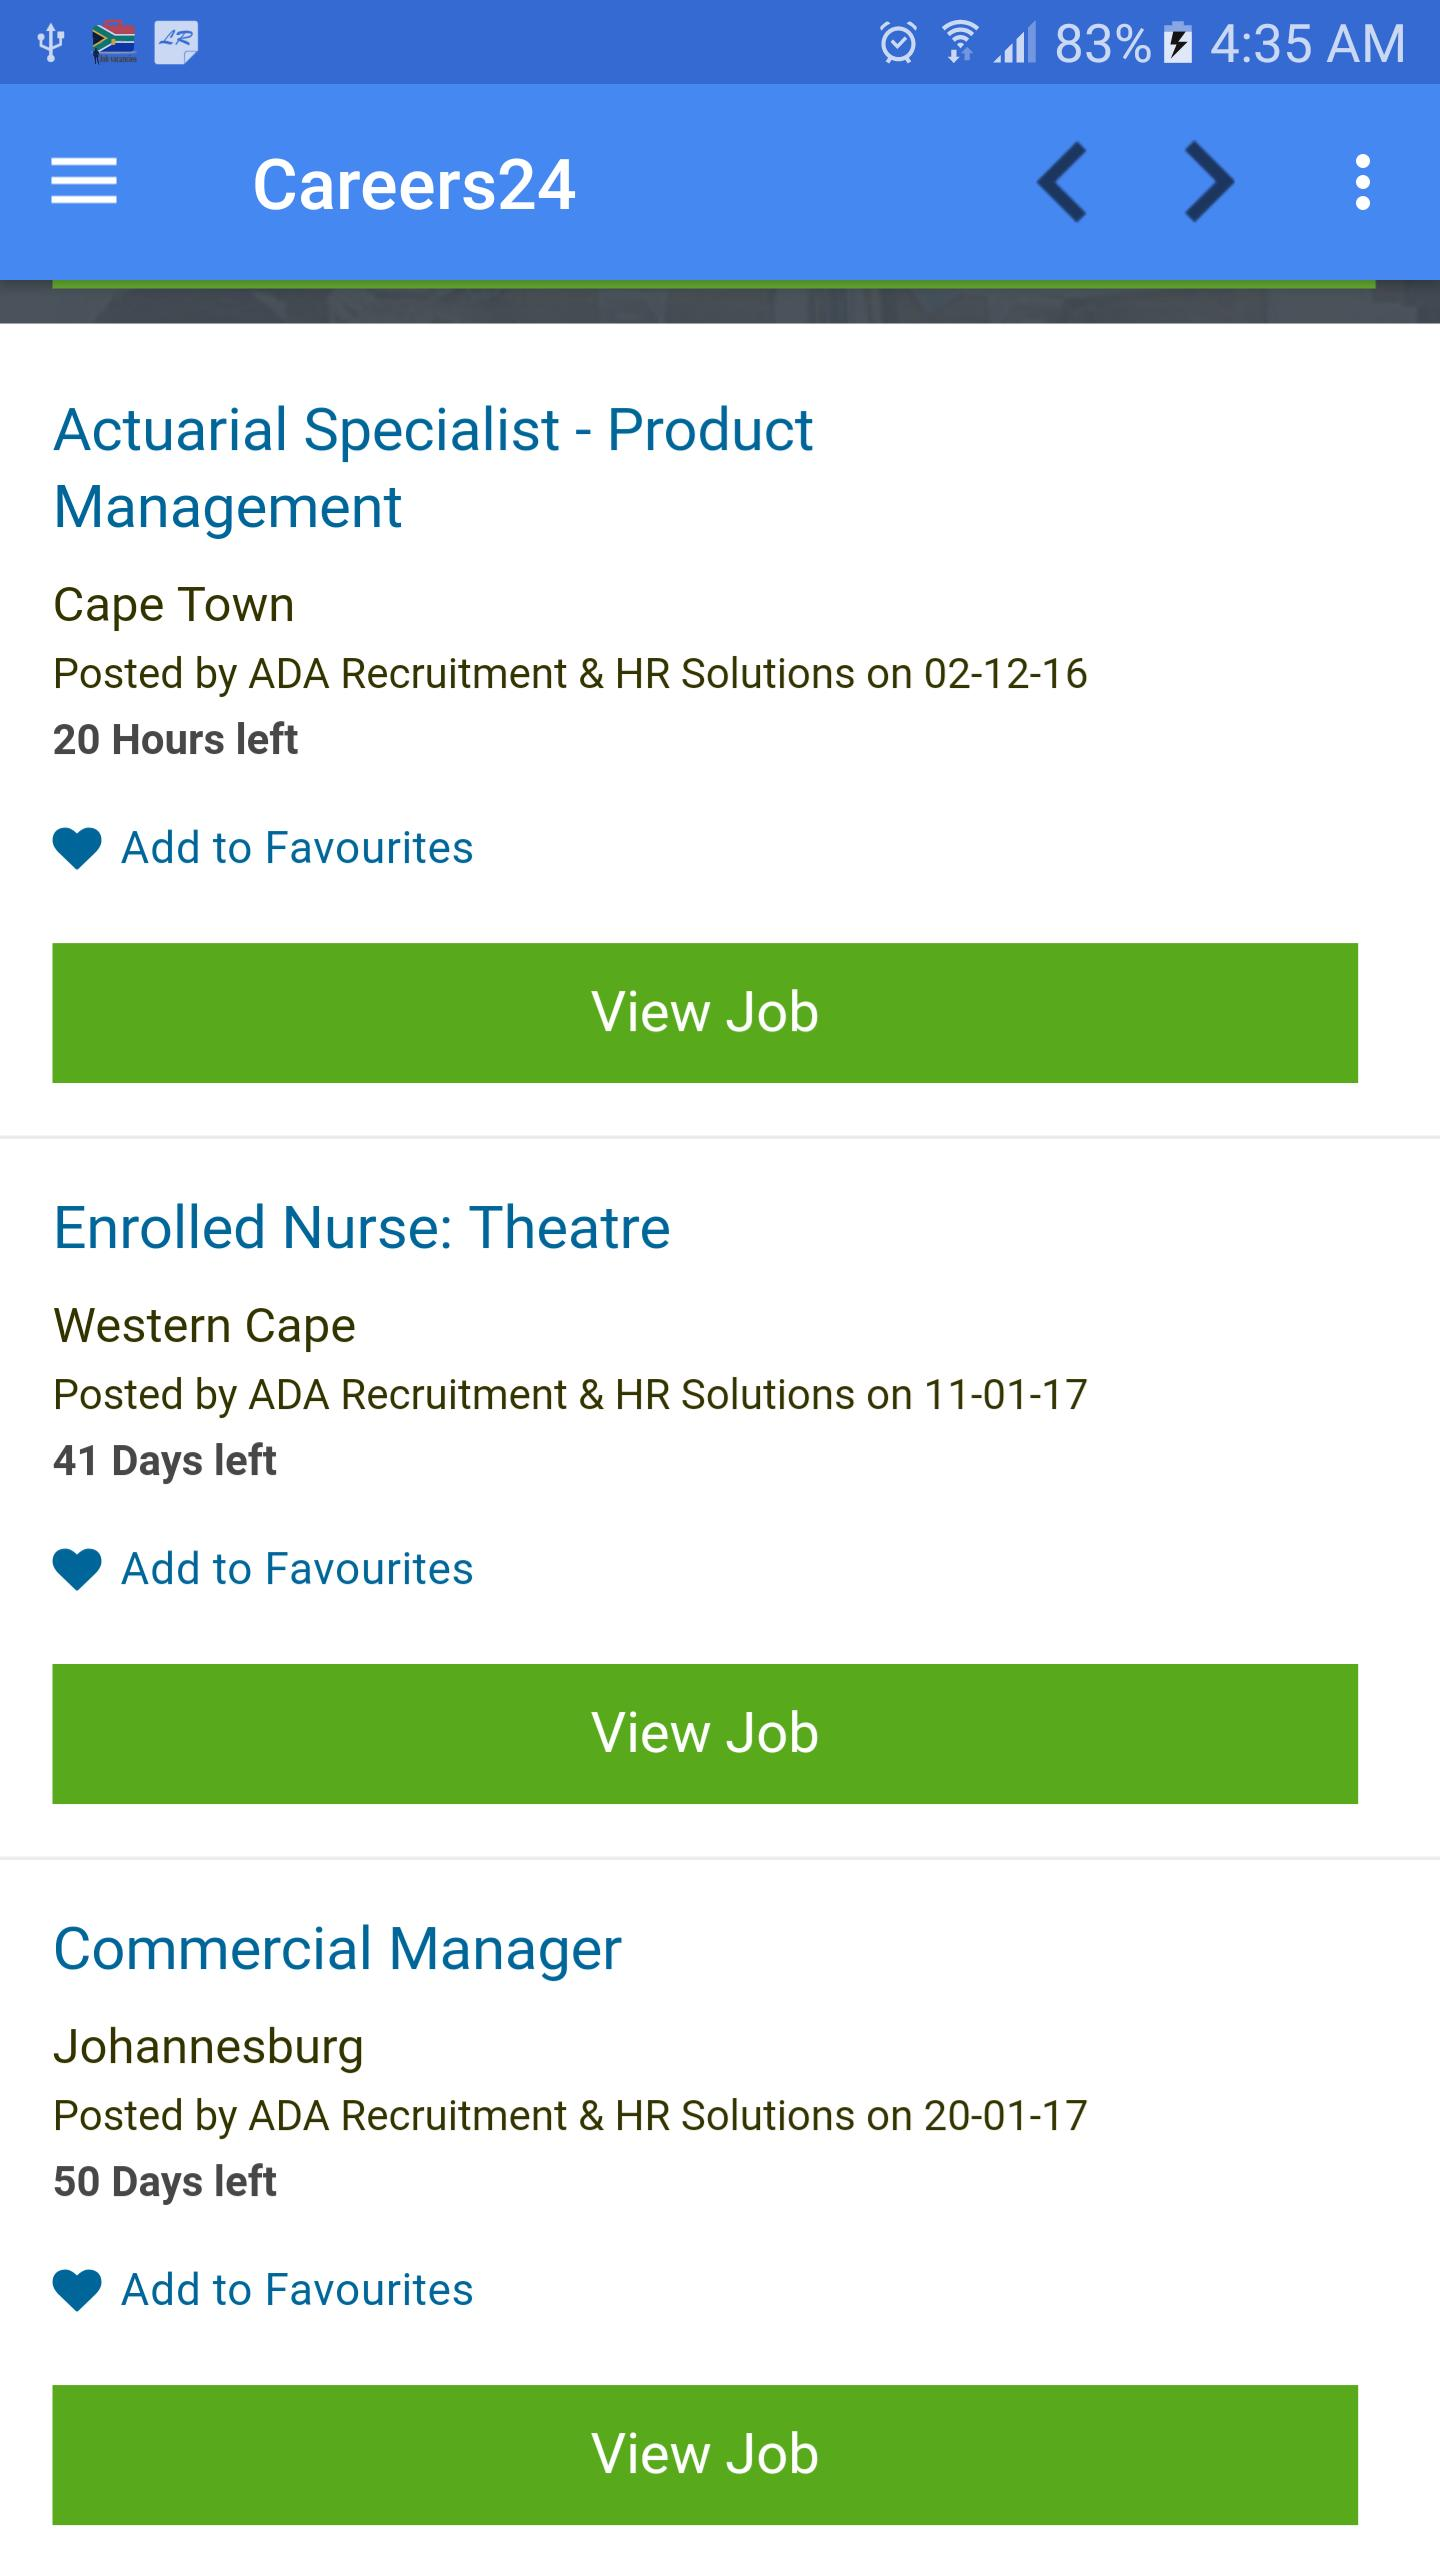 Job vacancies in South Africa for Android - APK Download